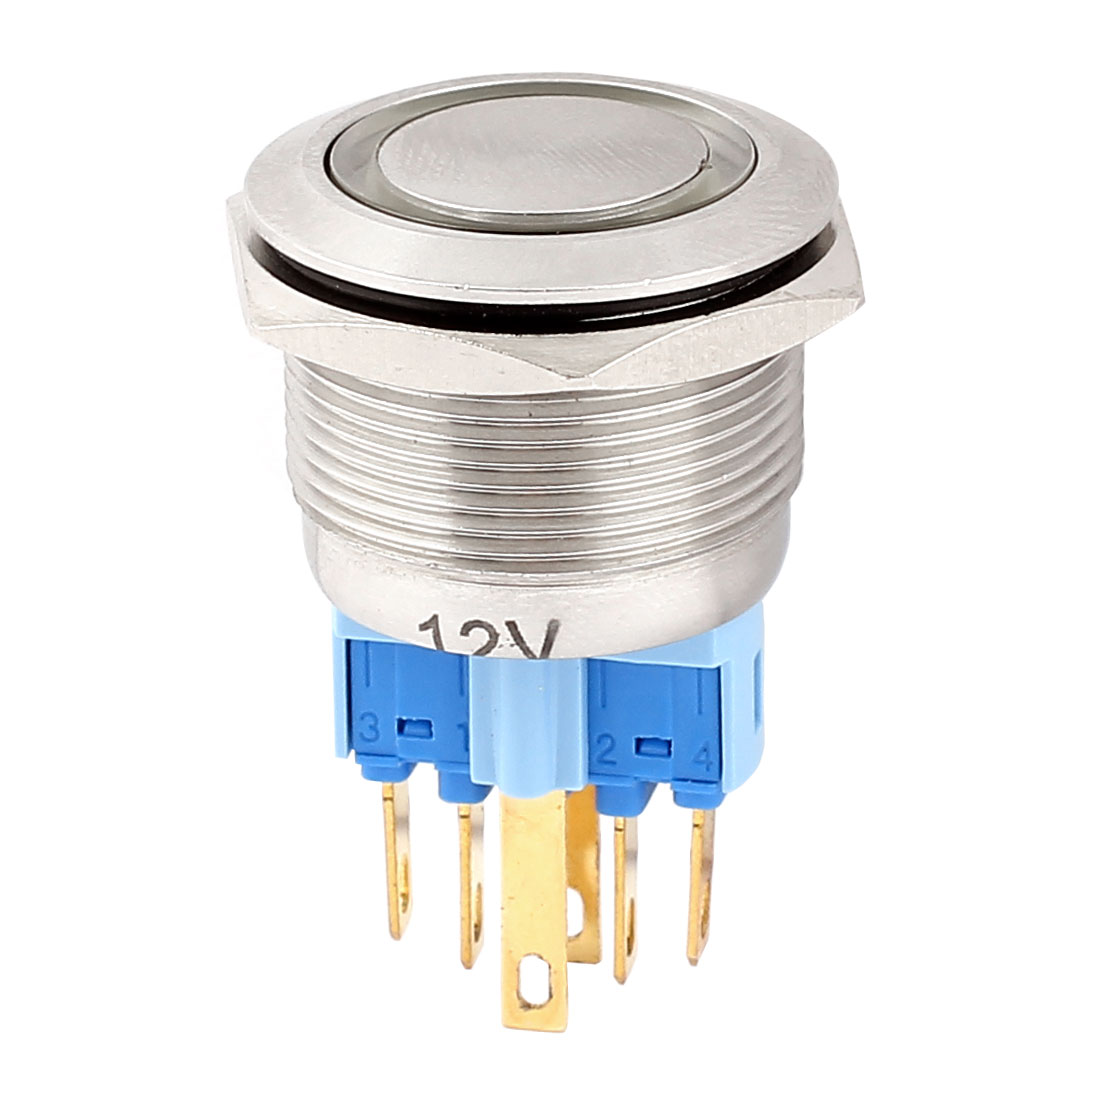 DC 12V Yellow LED Light 22mm Mounted Thread 6 Pins DPST NO/NC Momentary Push Button Switch